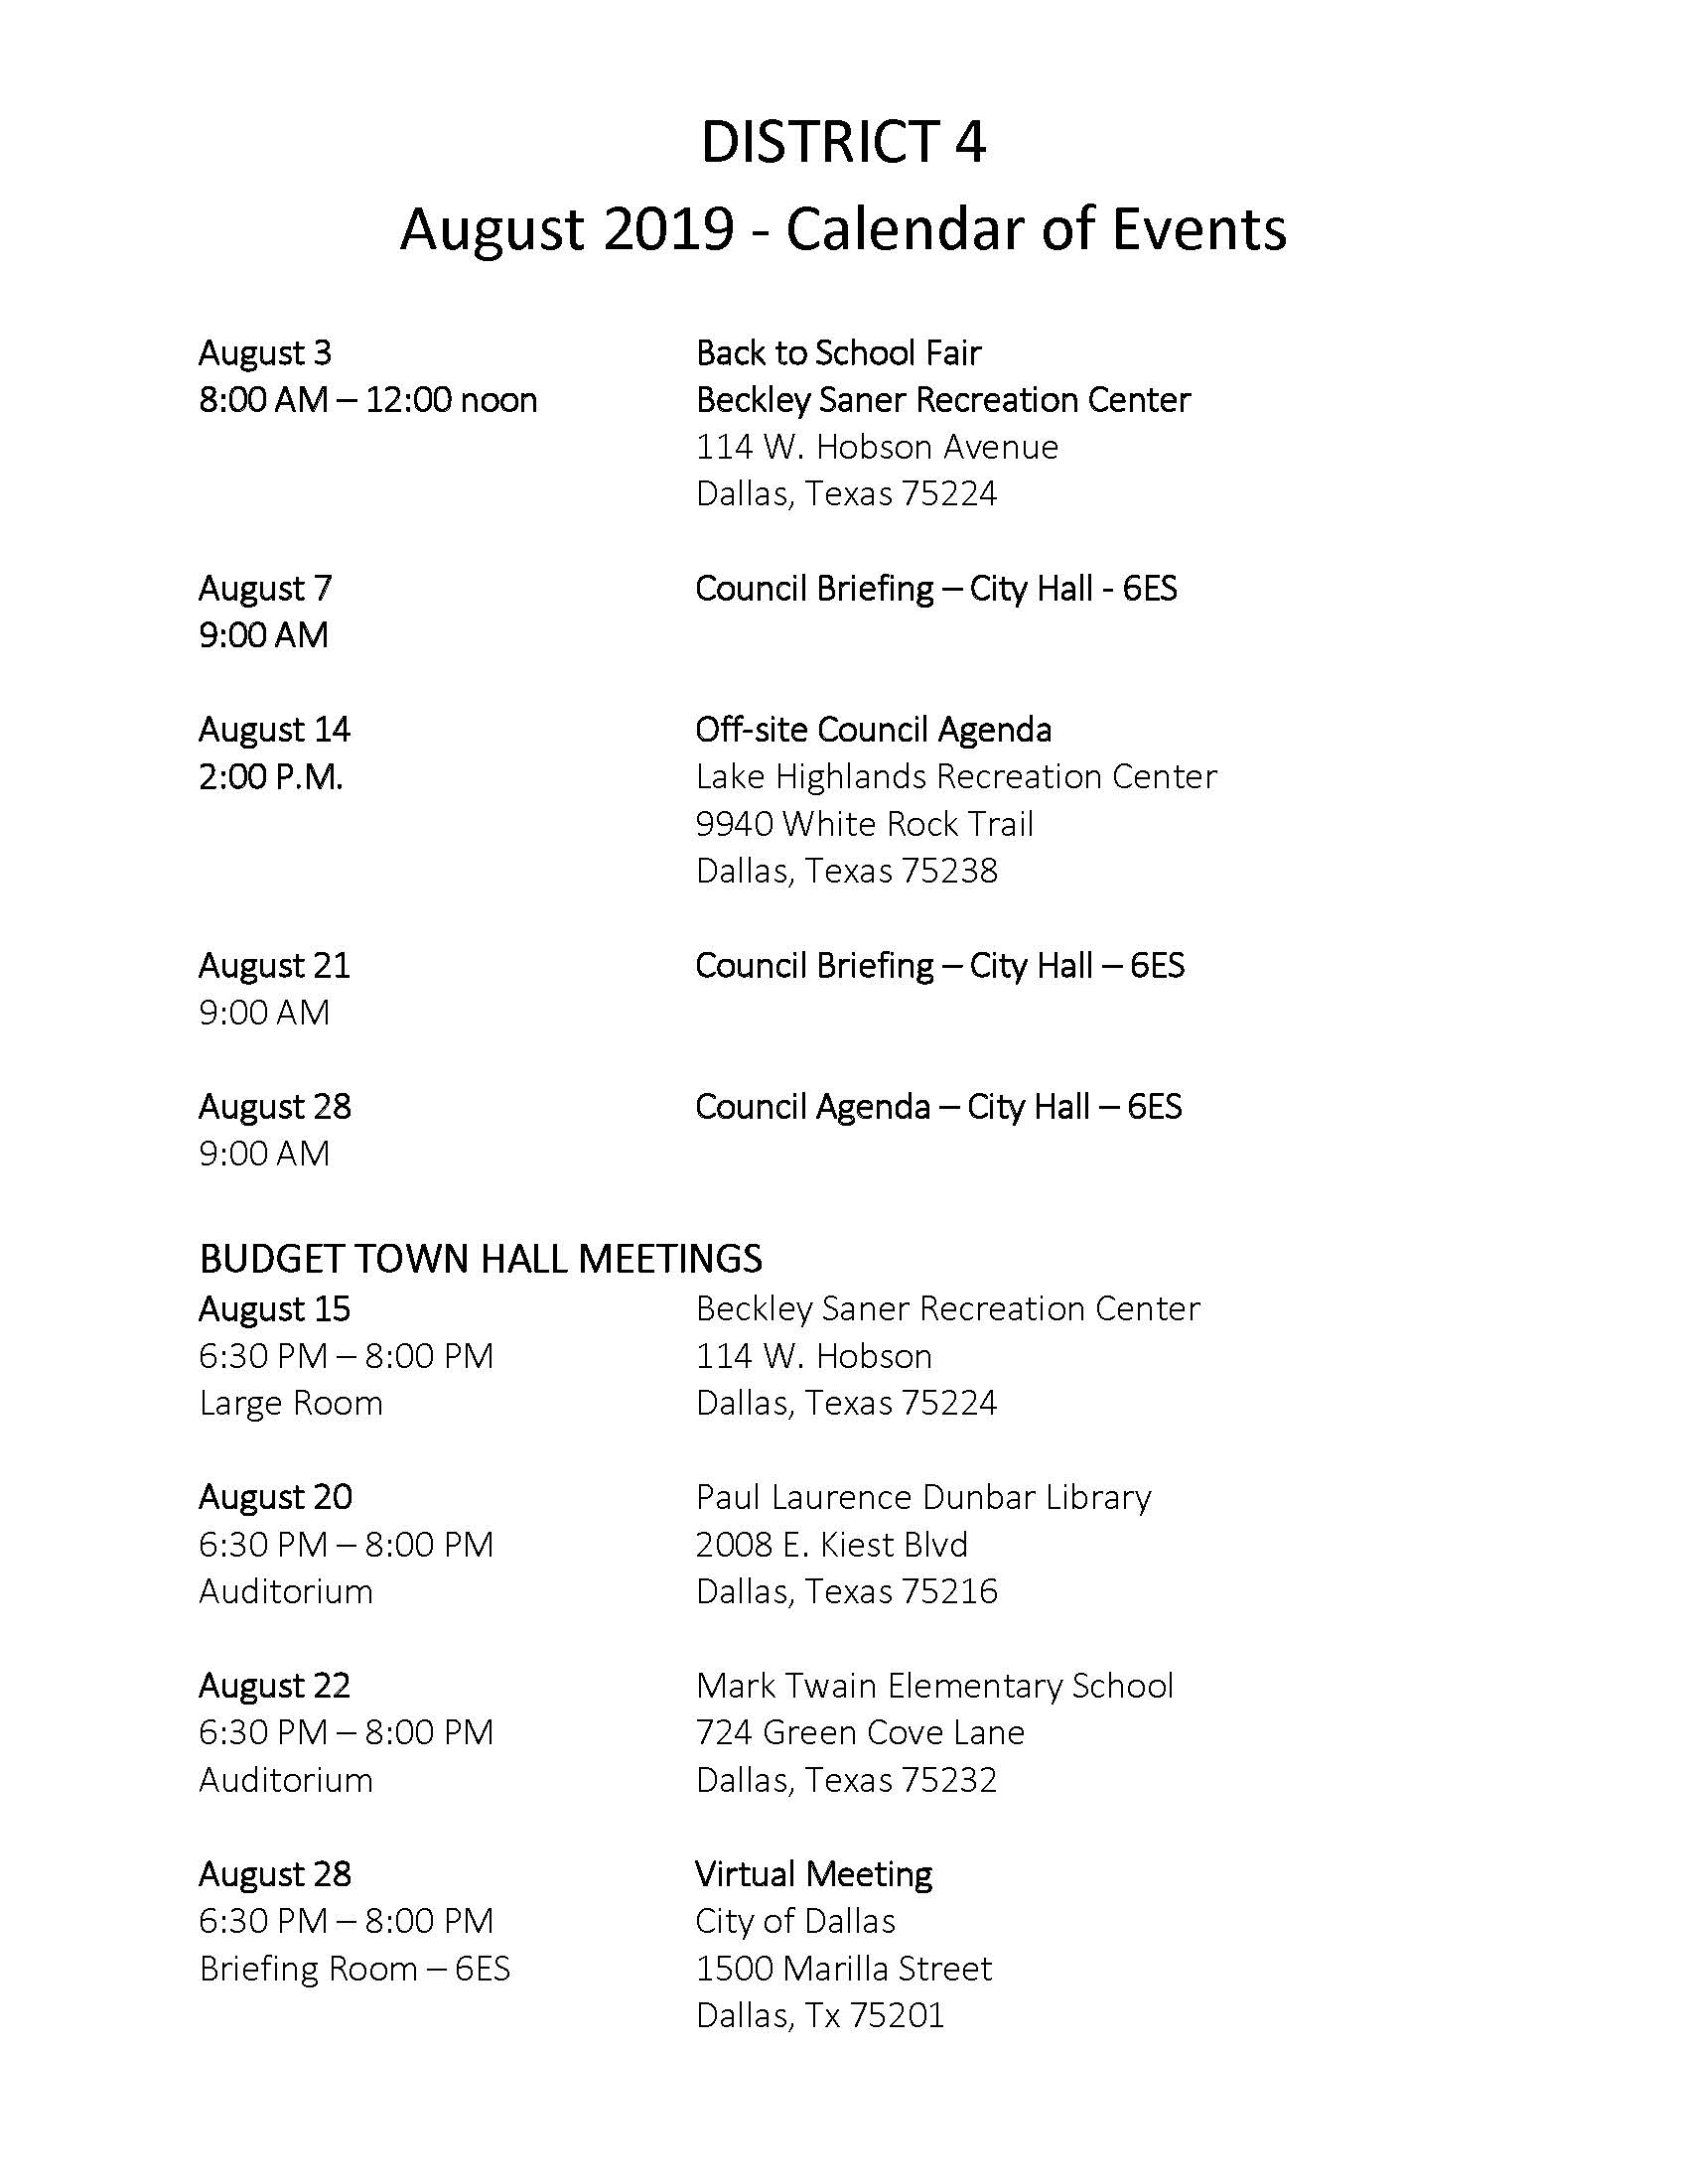 DISTRICT 4 Calendar of Events.jpg